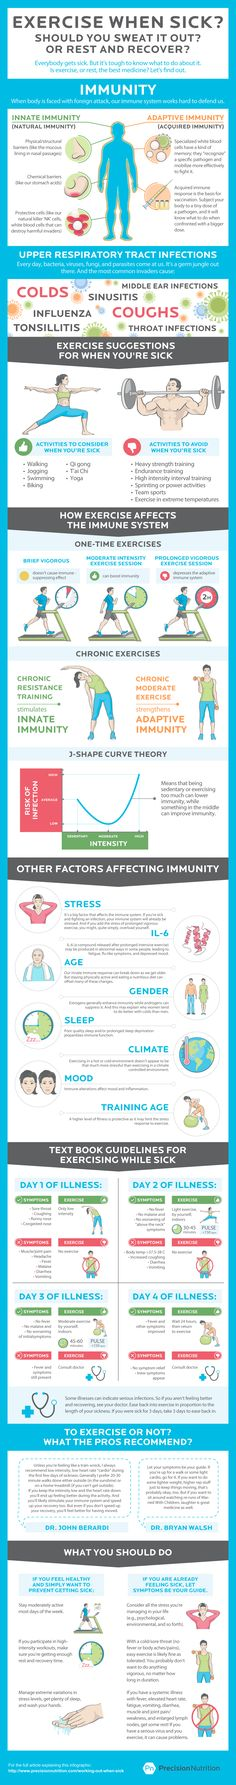 precision nutrition exercise when sick image Should you exercise when sick? [Infographic] How to make working out work for your immunity.